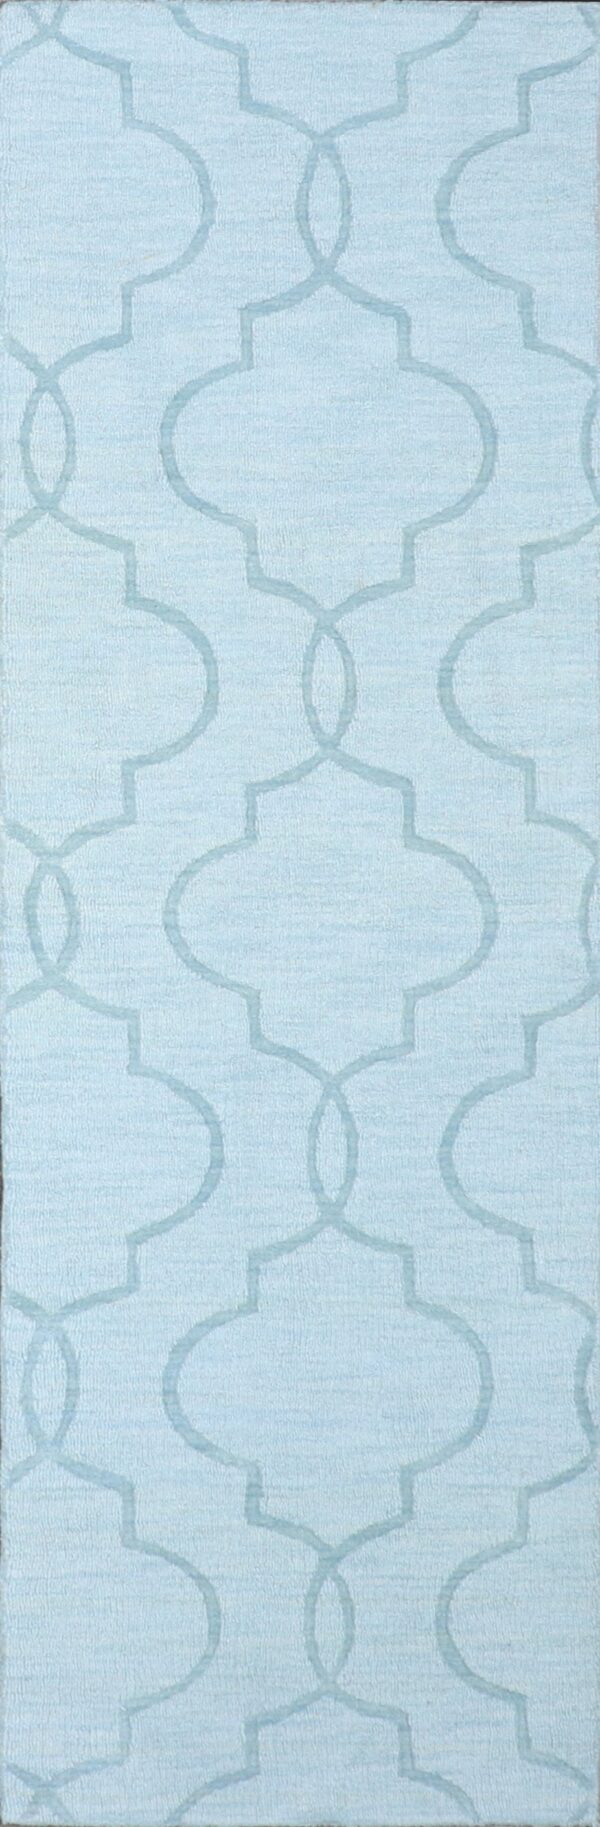 """2'6""""x7'11"""" Contemporary Wool Hand-Tufted Rug - Direct Rug Import 